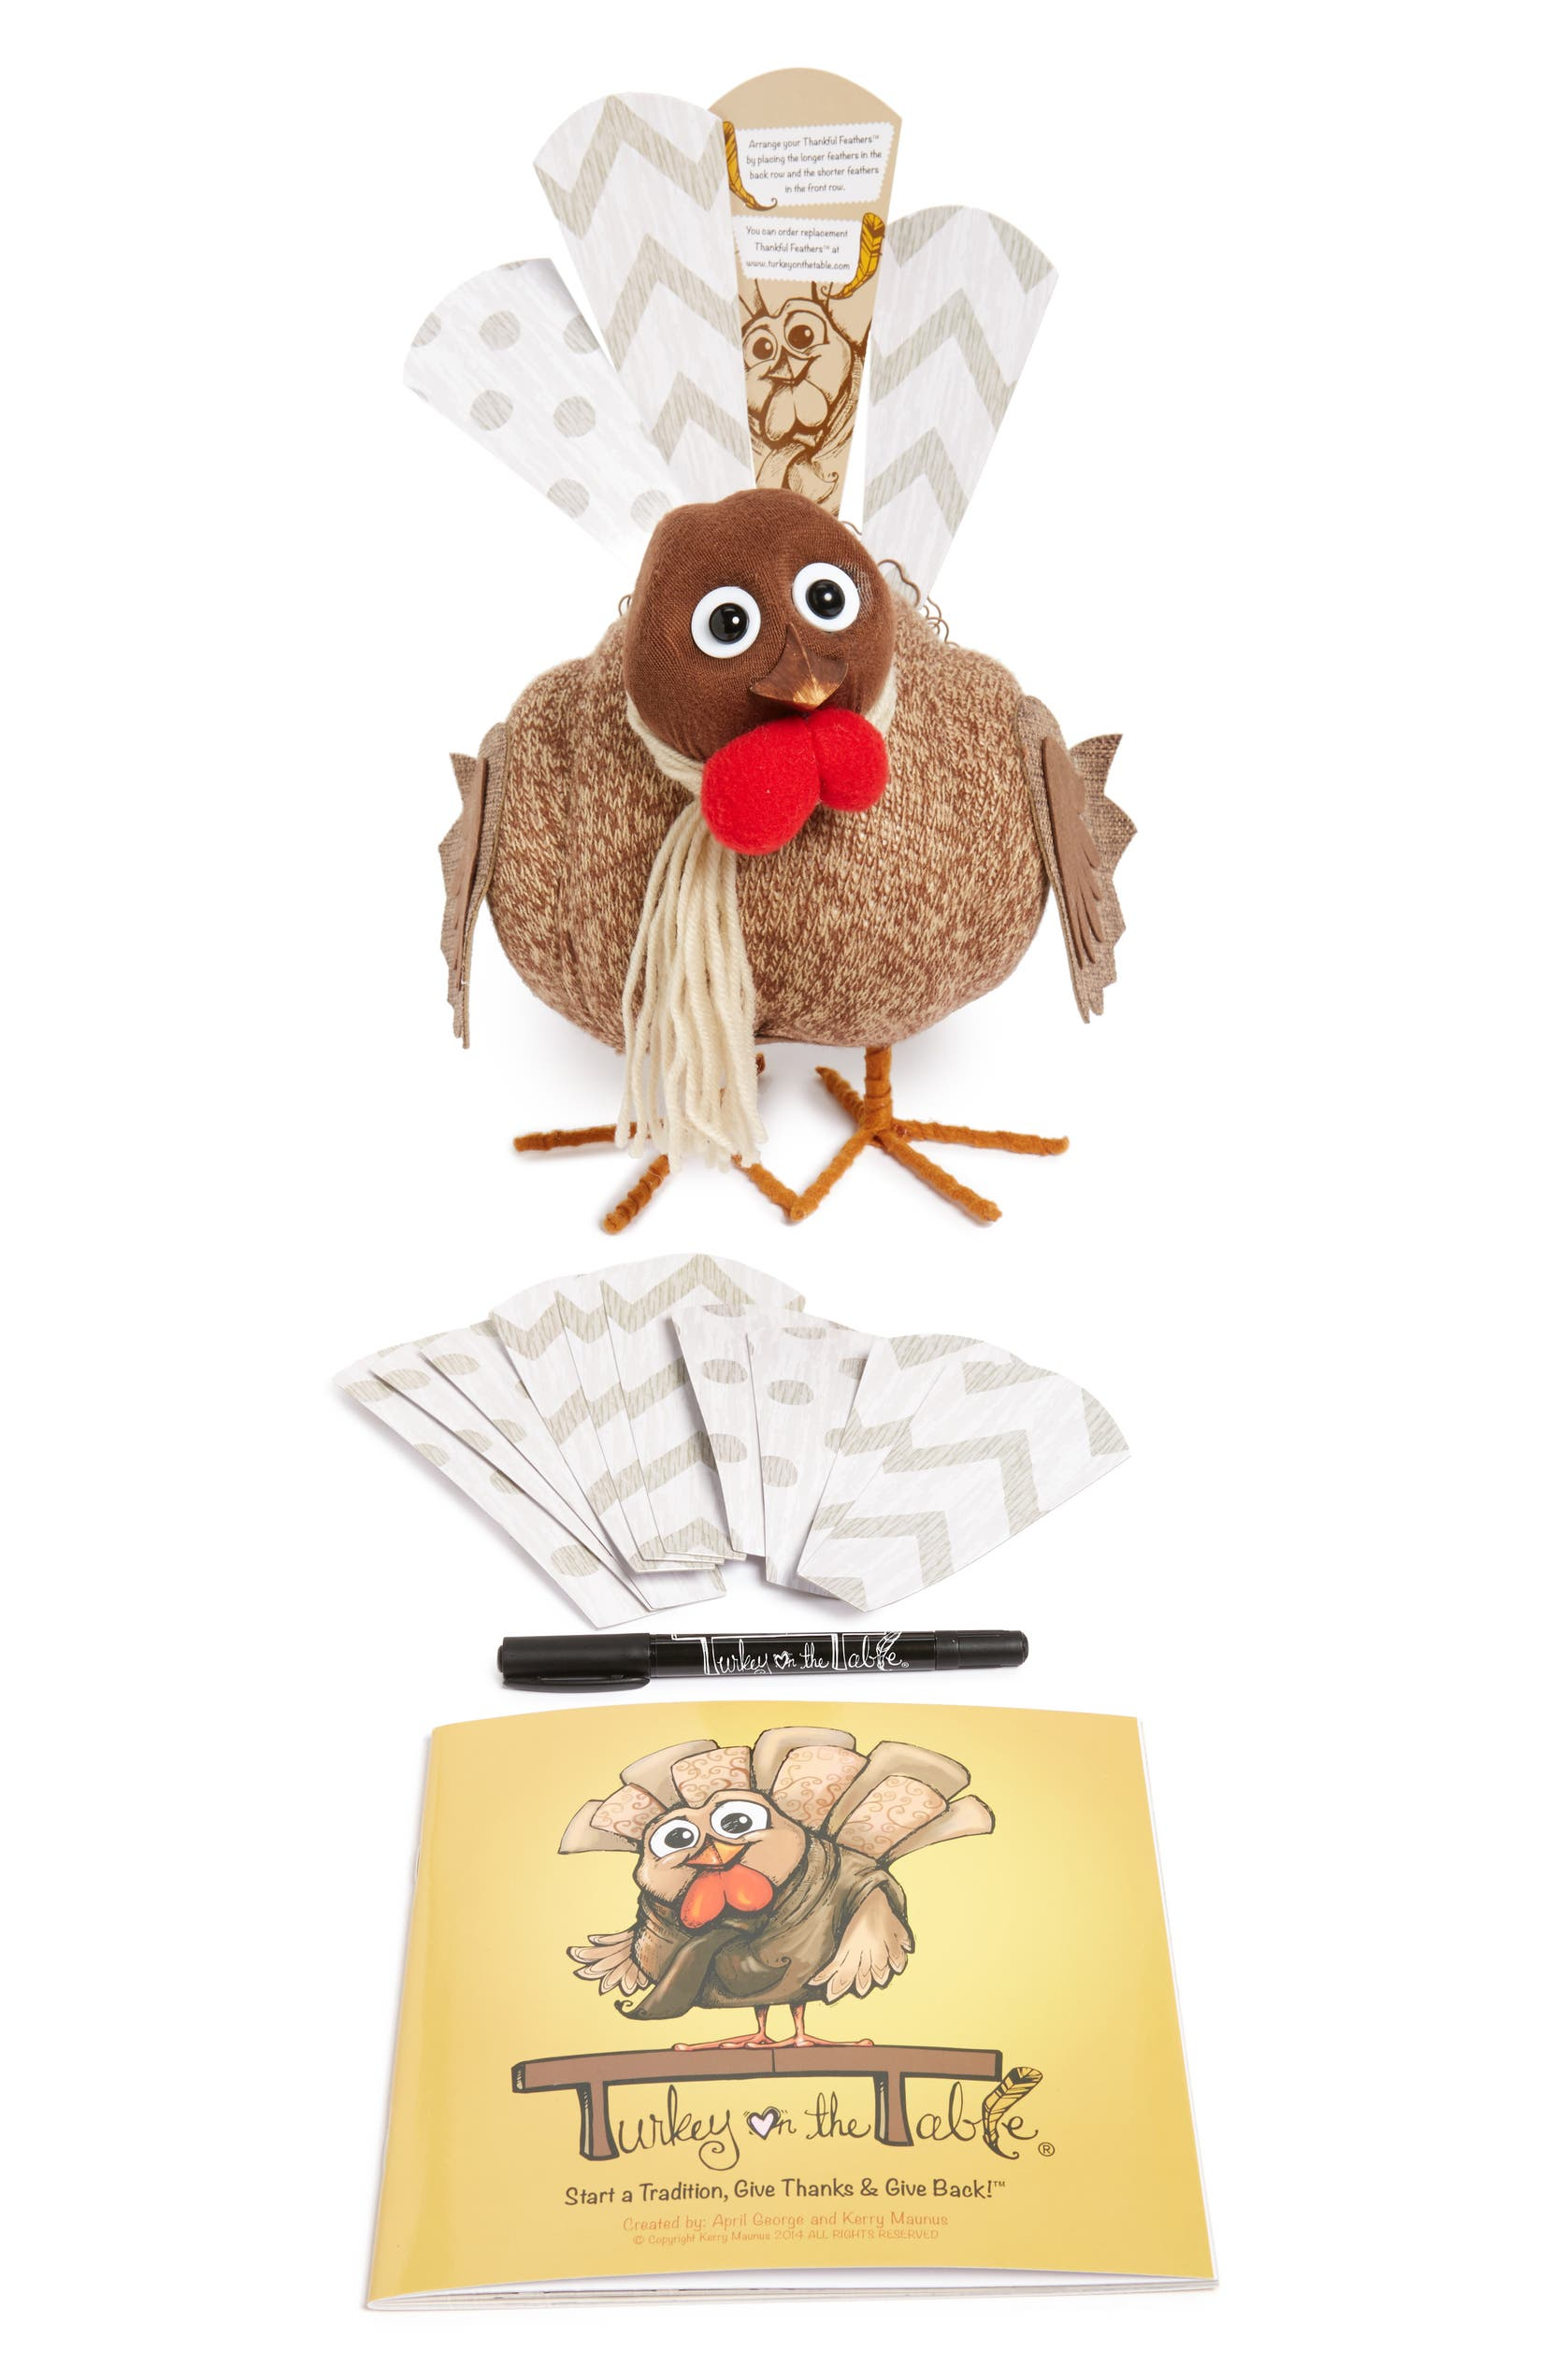 c76ec0d04c3 Turkey on the Table Turkey Activity Kit